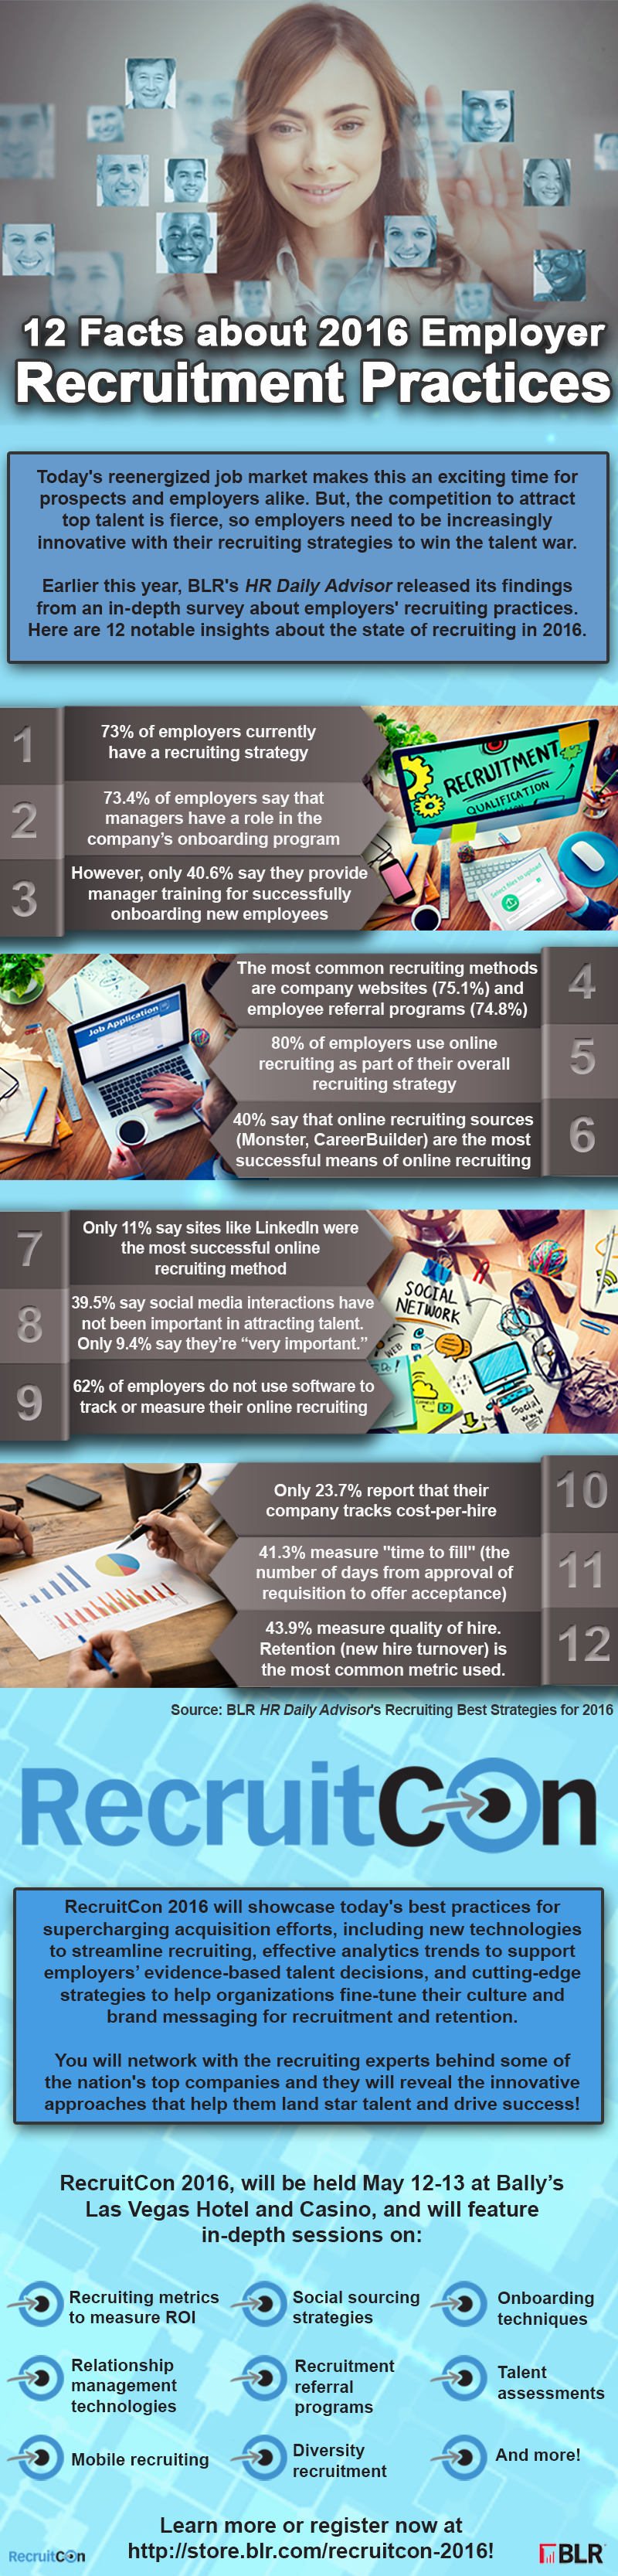 Recruiting Trends Infographic